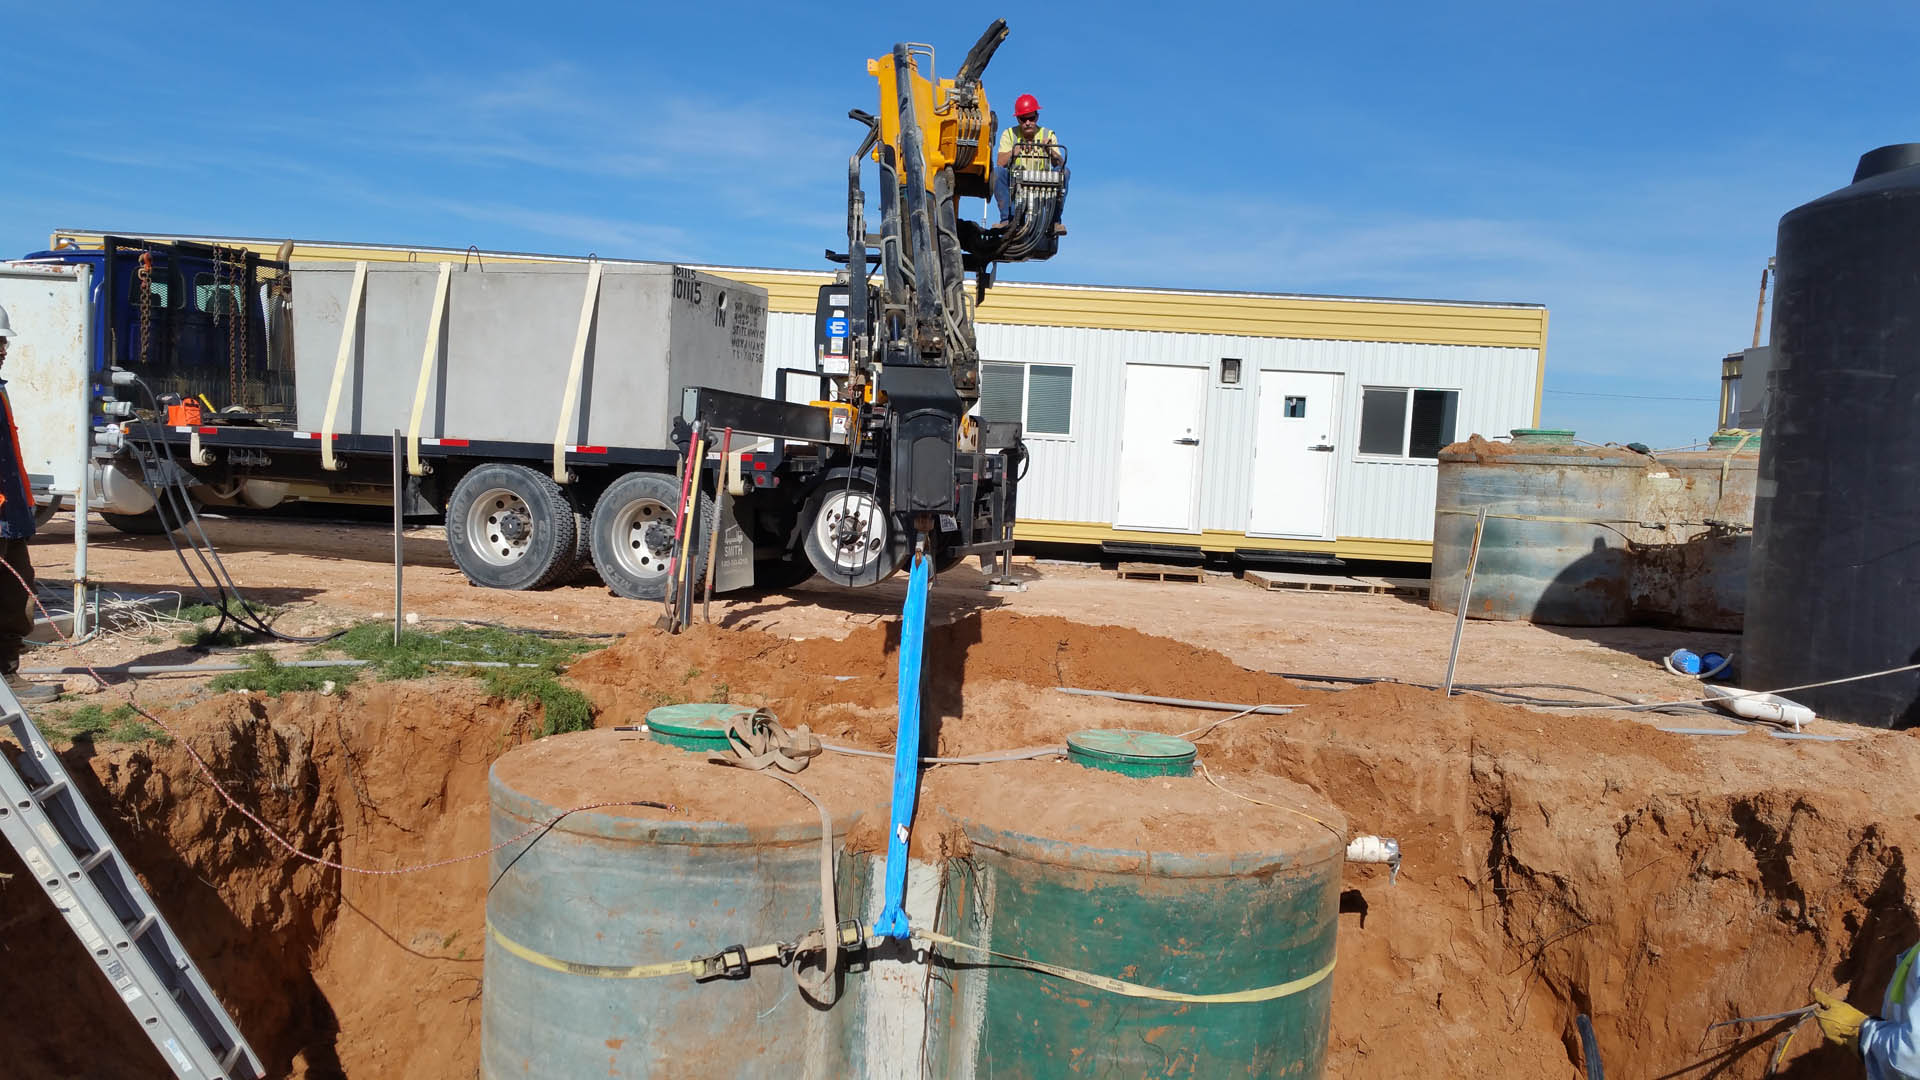 Portable Toilet Rental in Fort Stockton, TX - R & R Construction